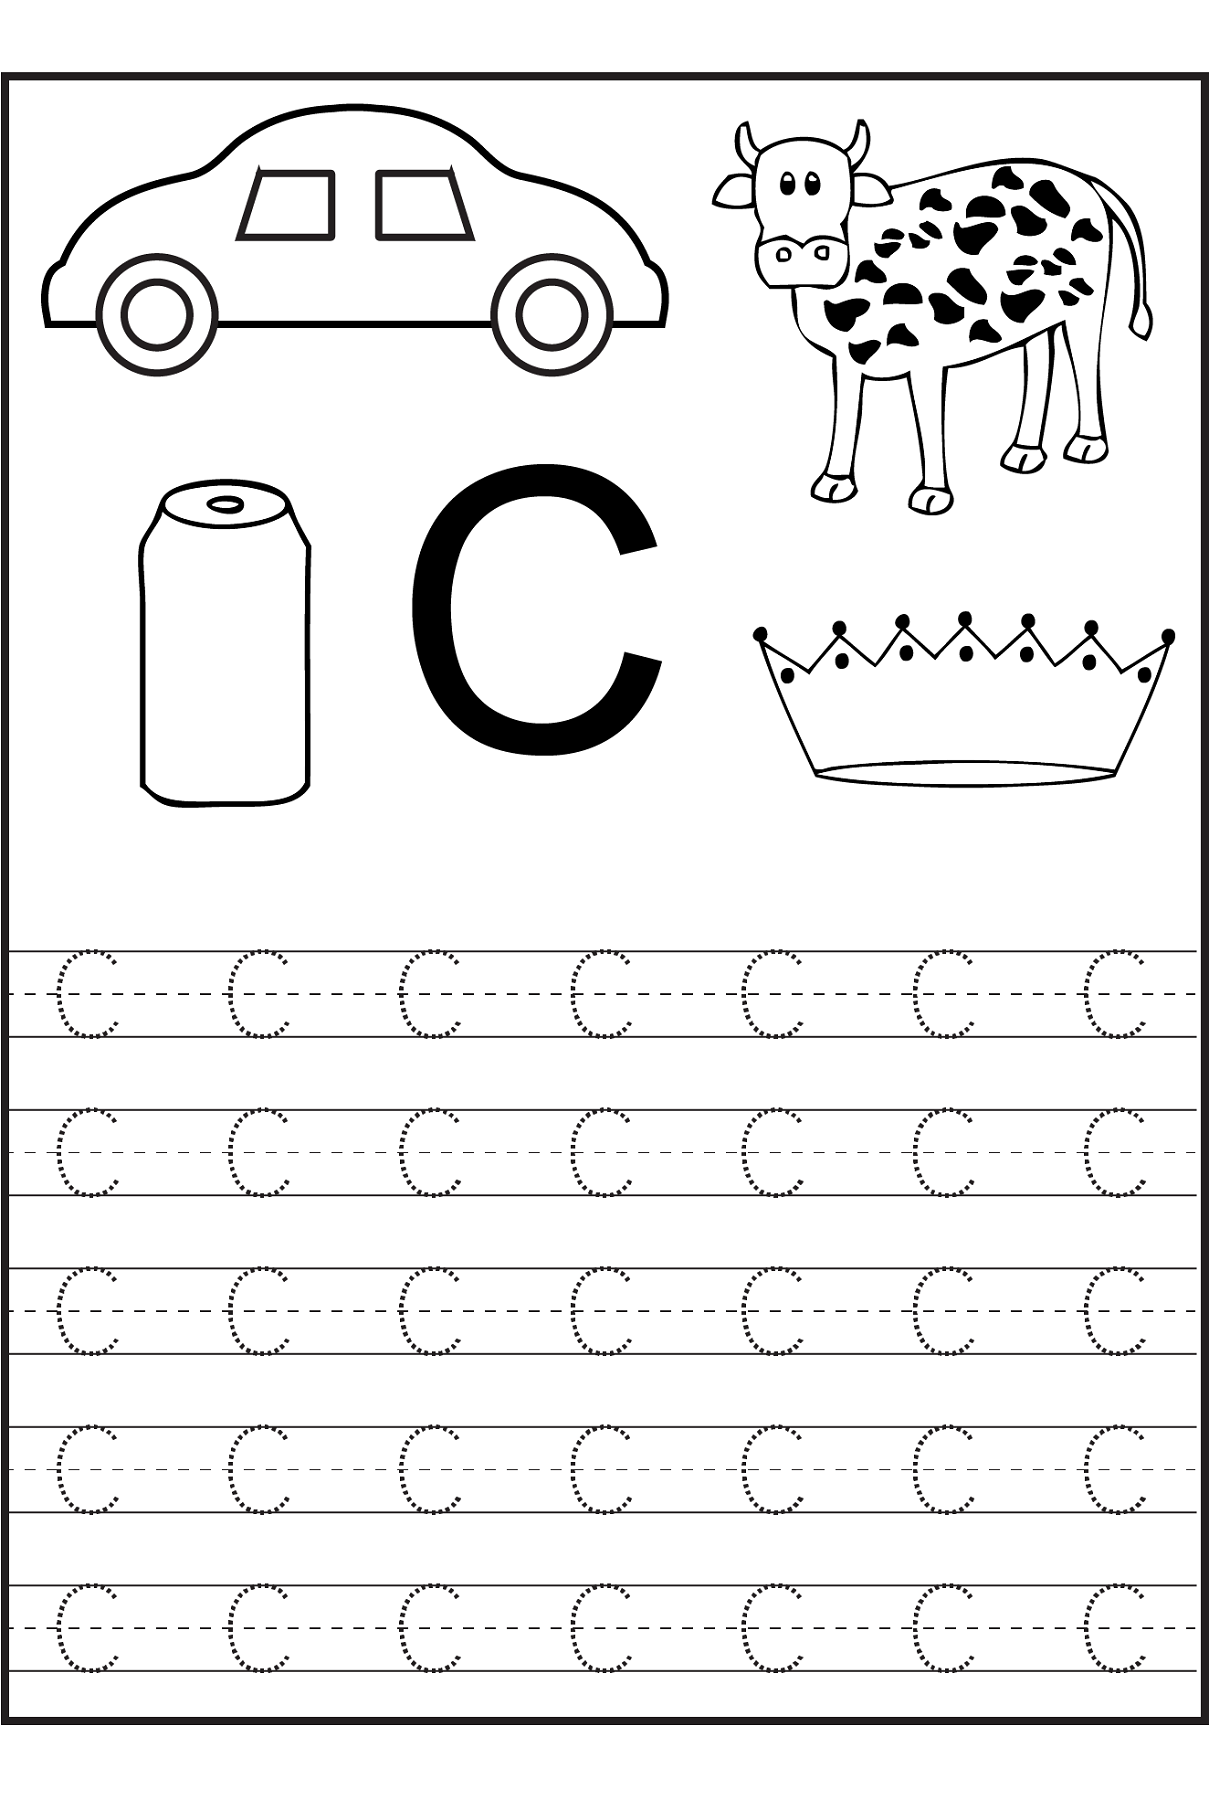 Trace The Letter C Worksheets | Learning Worksheets